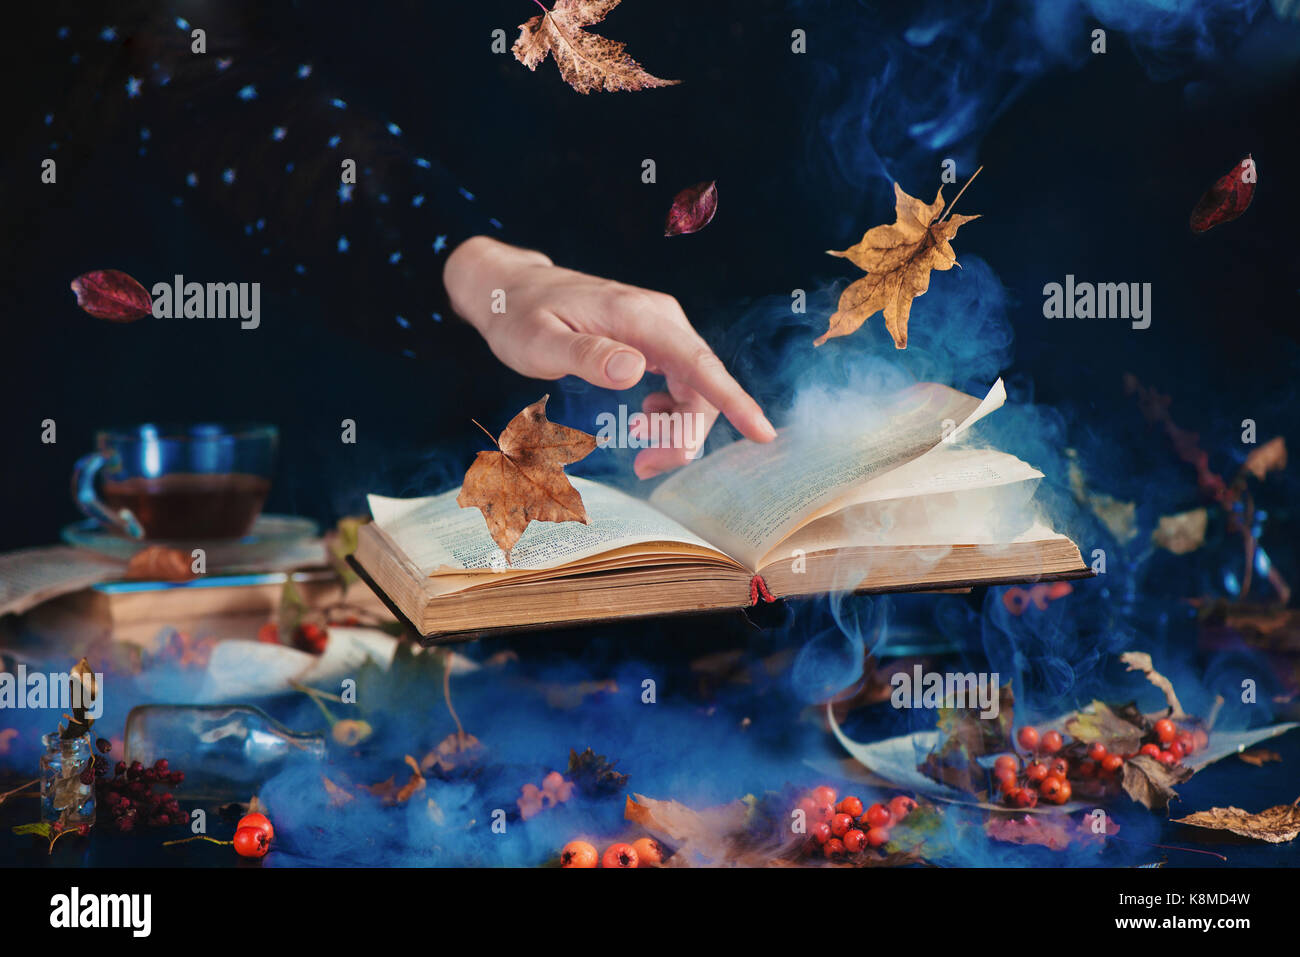 Still life with levitating book of spells, autumn leaves, red berries, jars and bottles on a dark background with - Stock Image